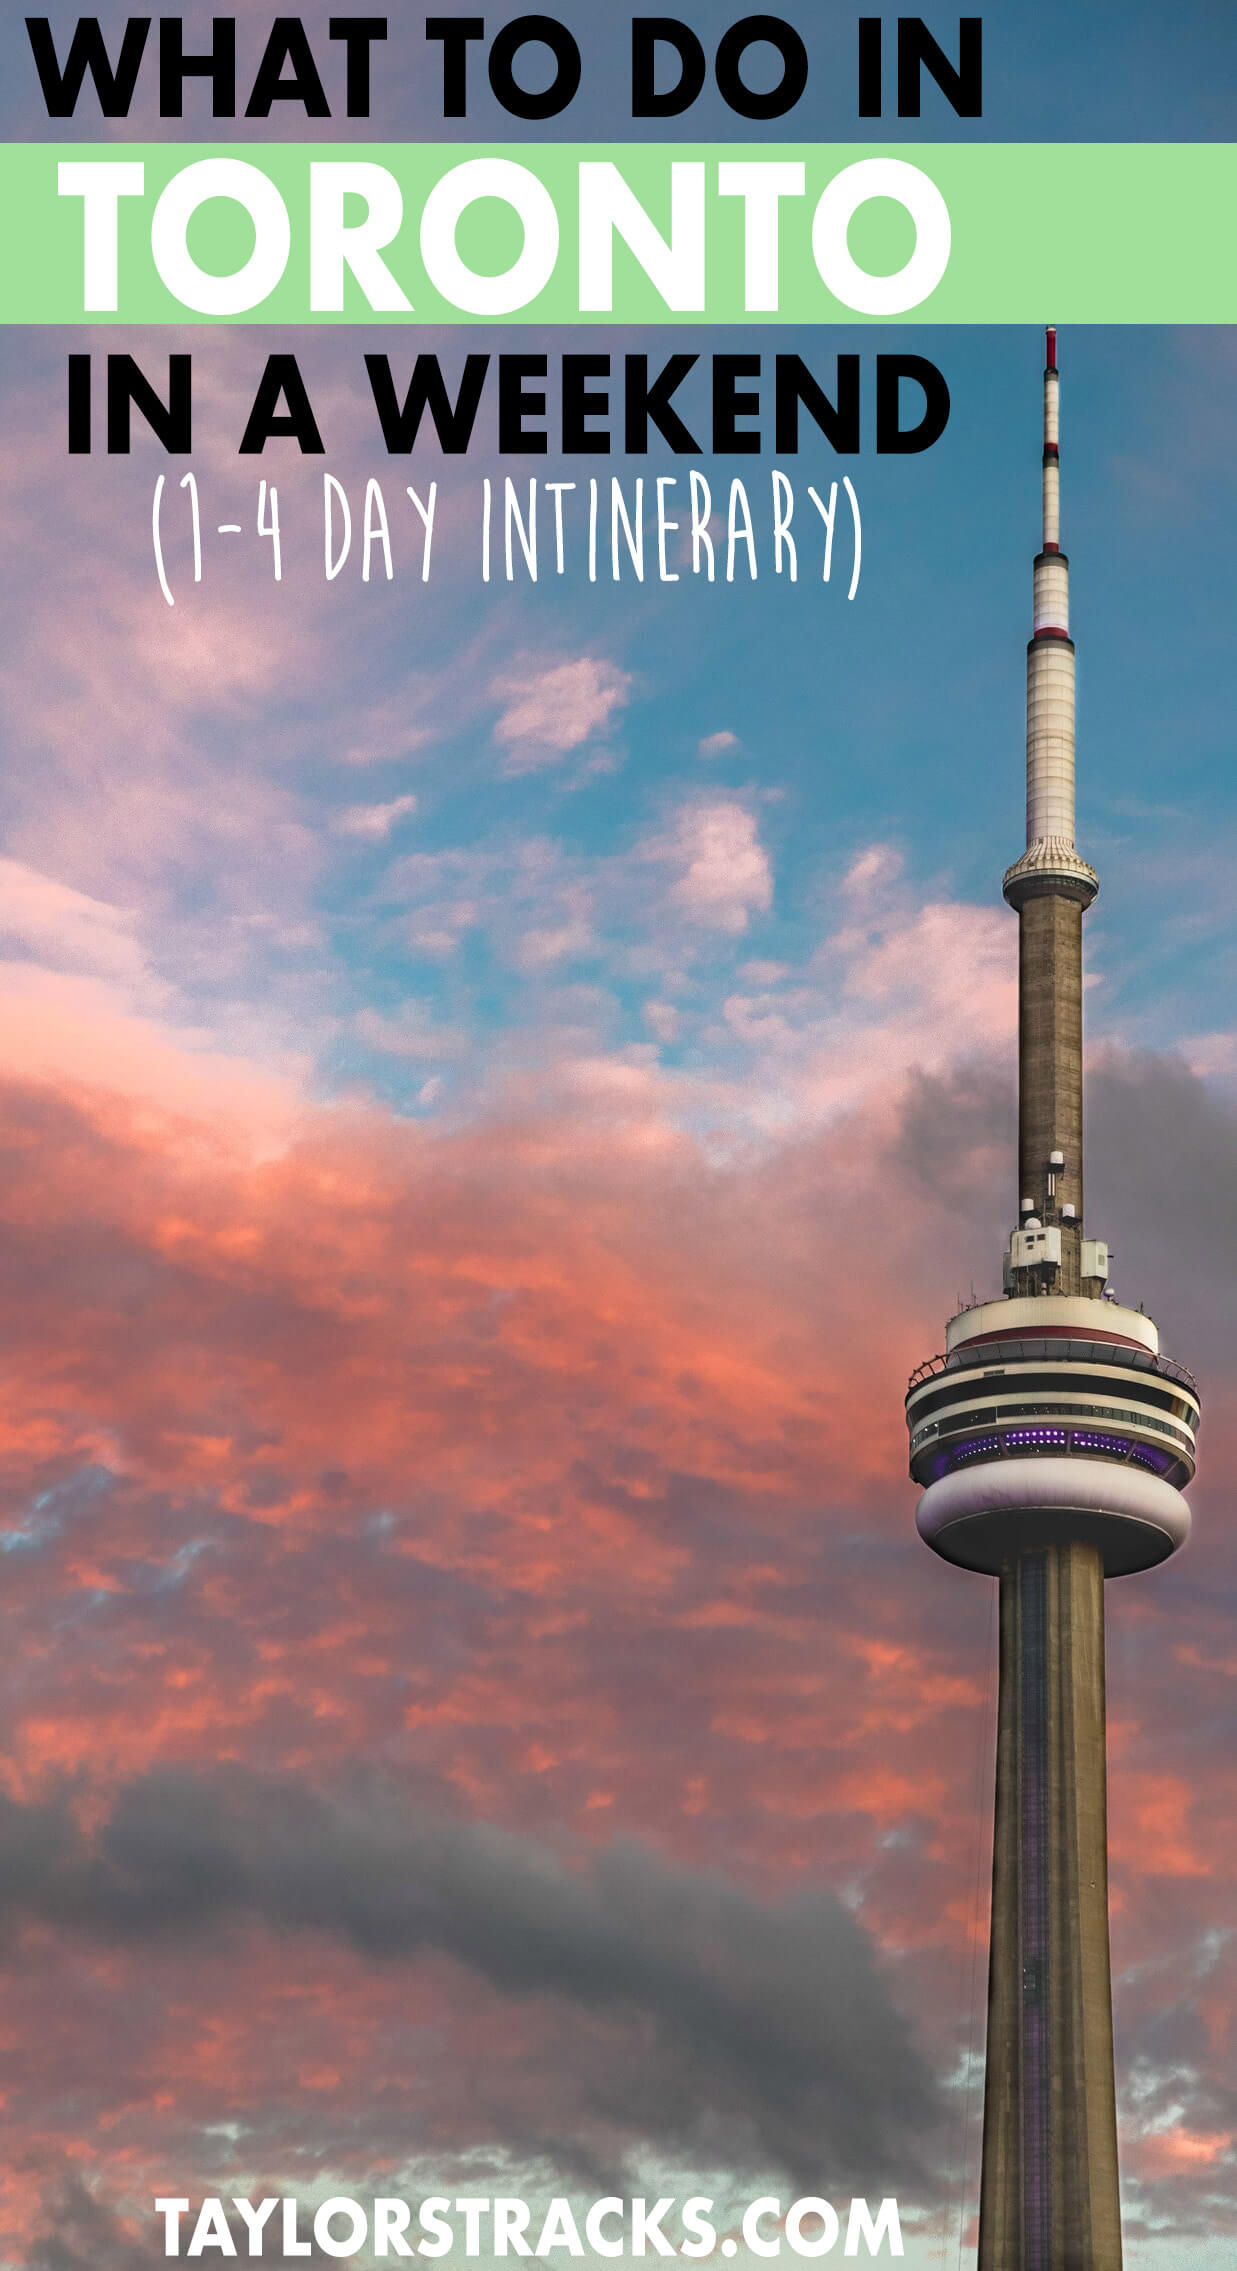 Toronto Canada | Toronto Canada things to do in | Toronto Canada travel | Things to do in Toronto | Toronto travel | Toronto trip | Toronto travel guide | CN Tower